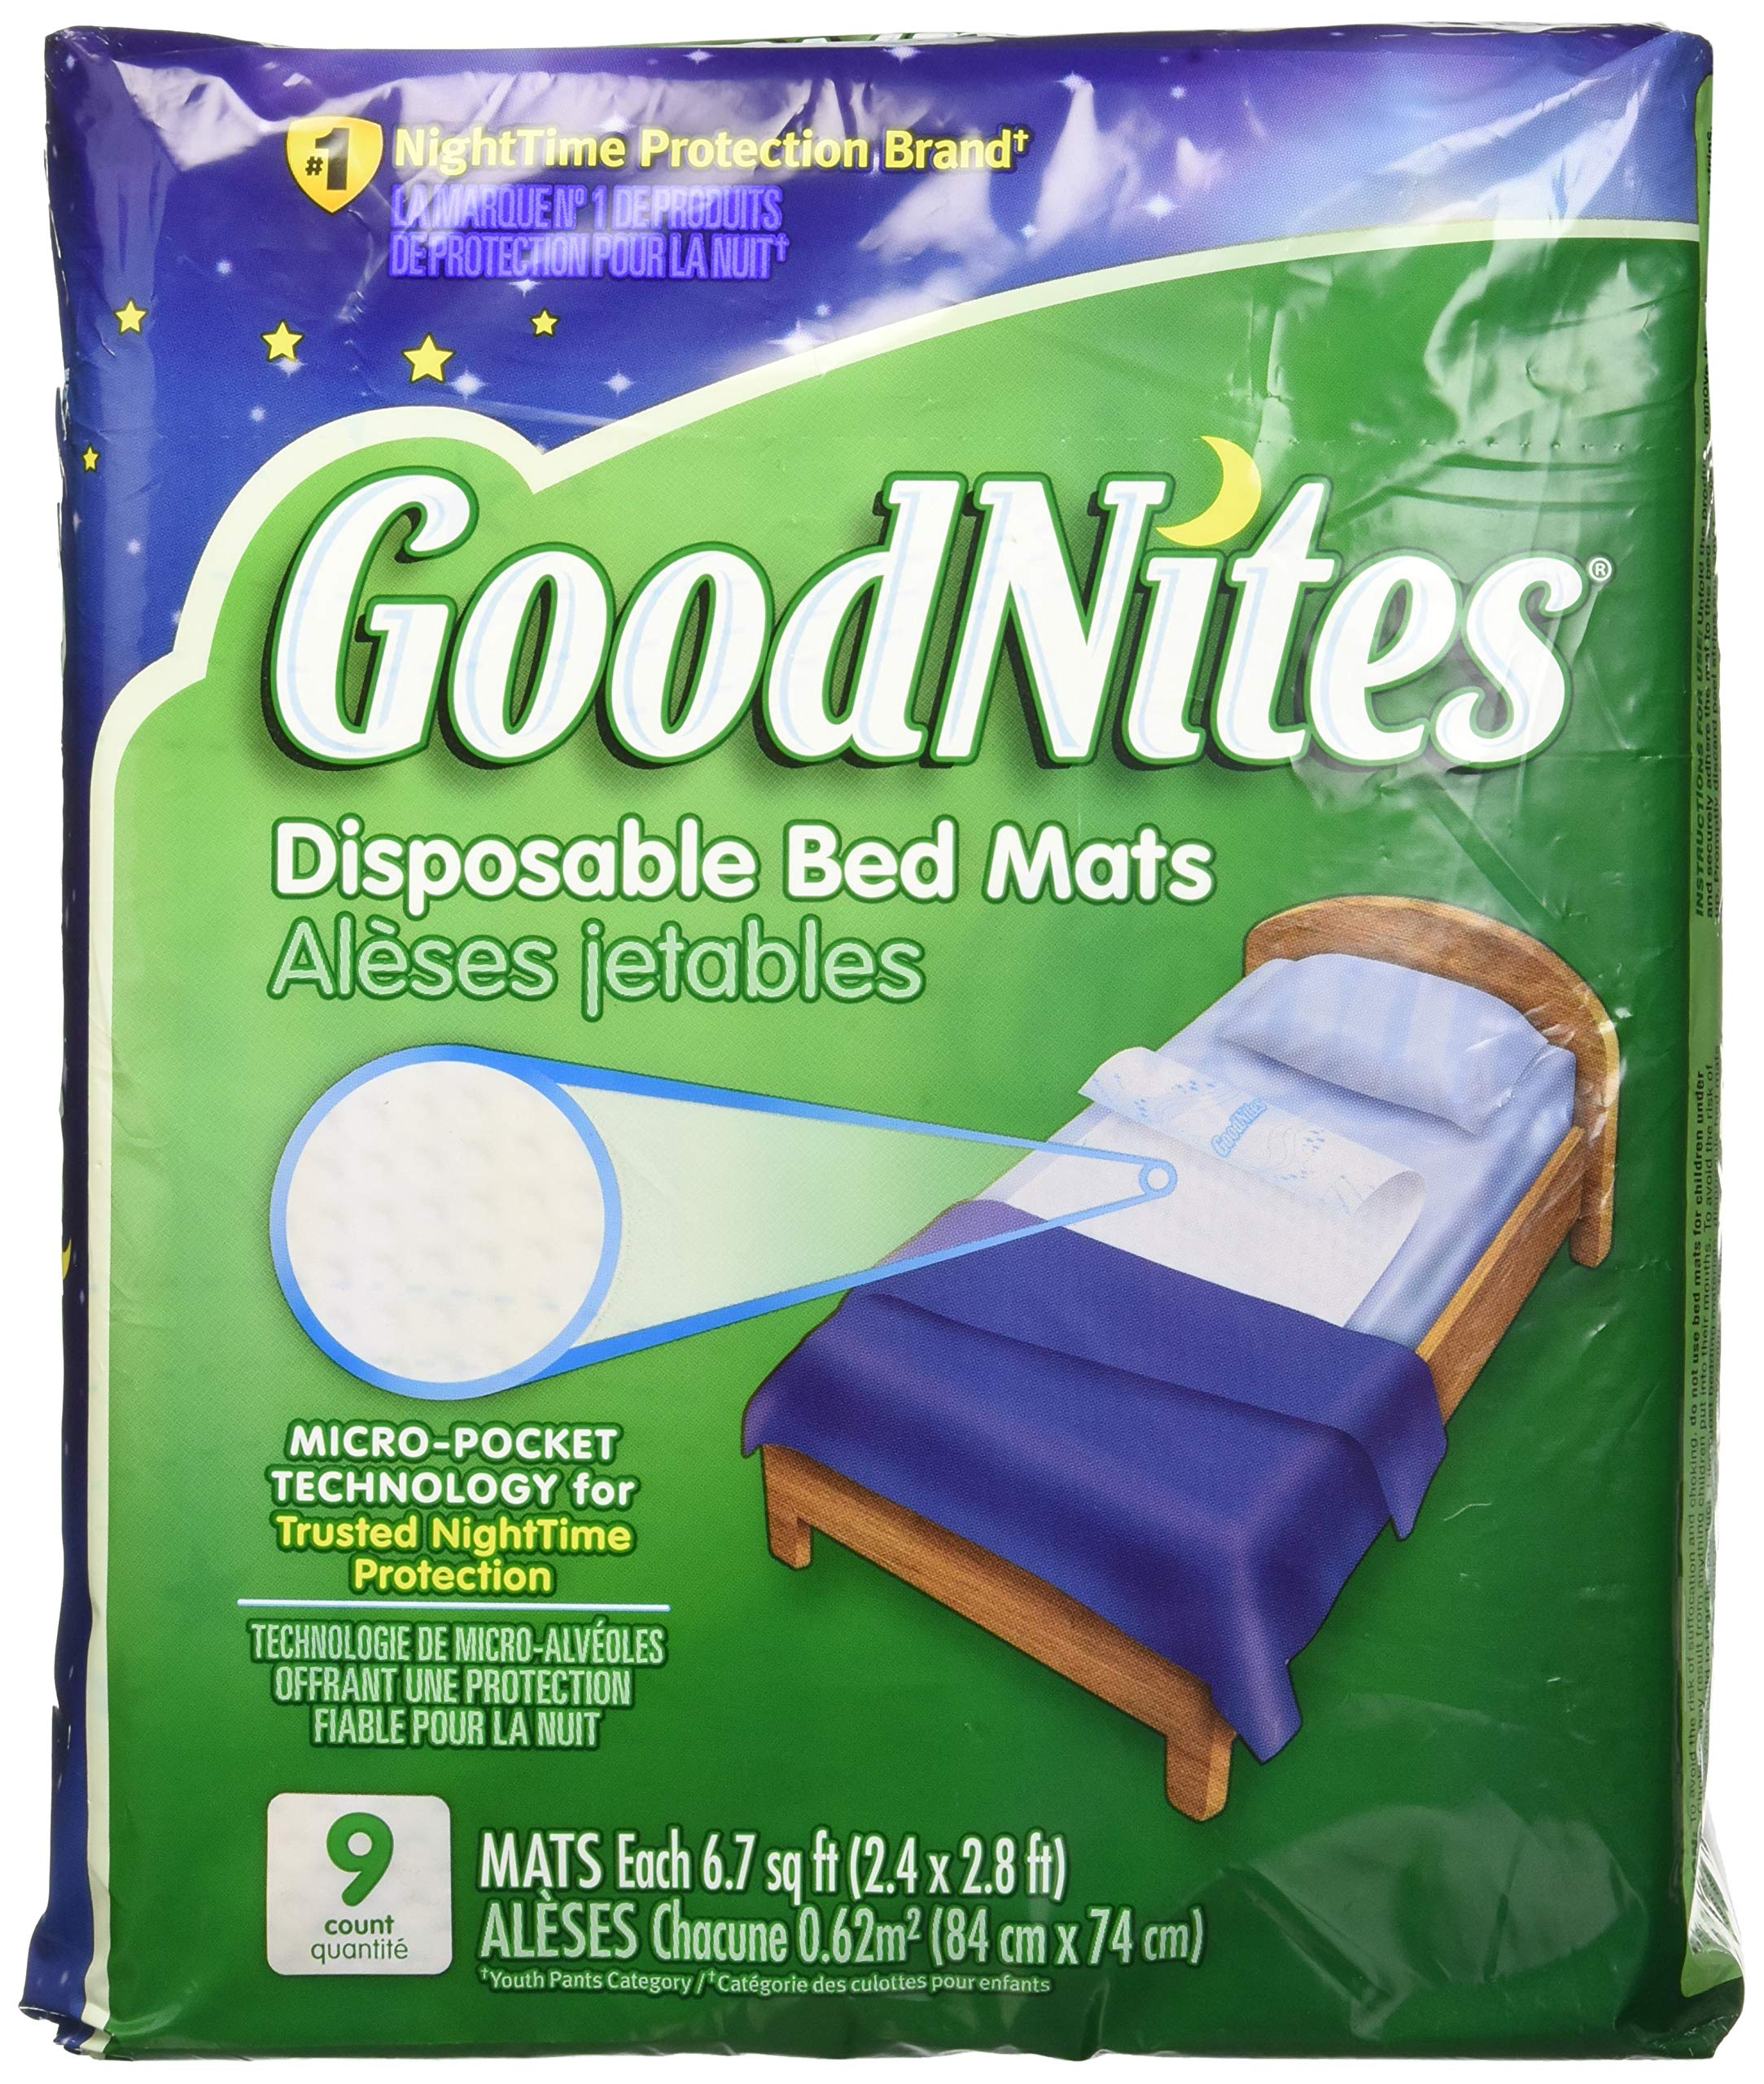 Goodnites Disposable Bed Mats - 36 Ct.